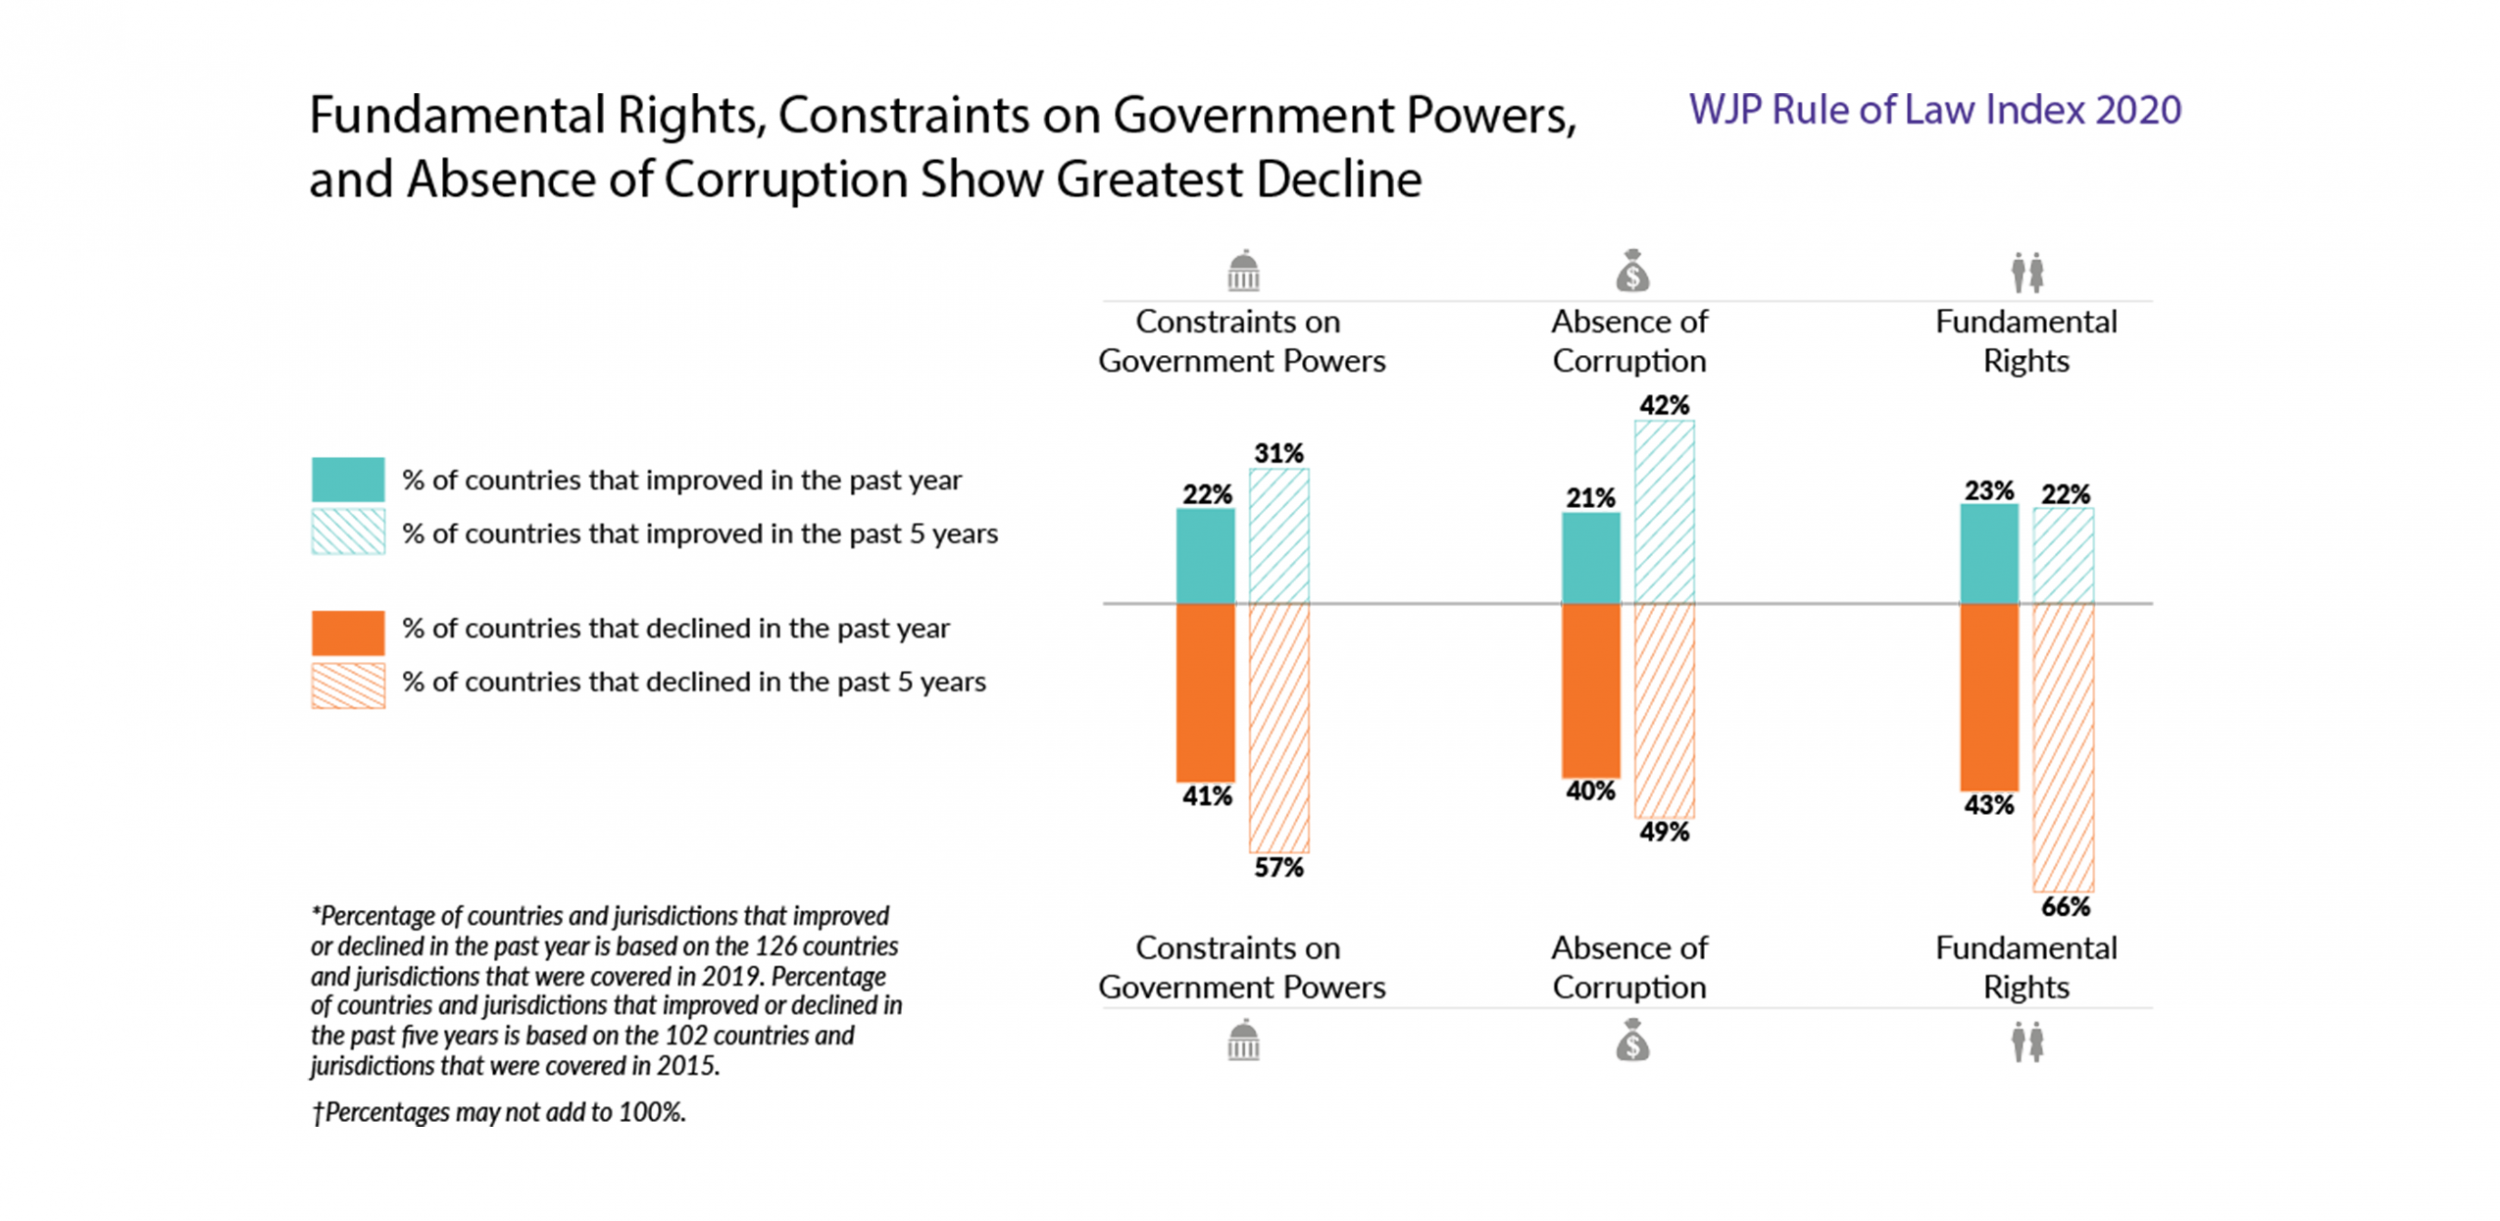 Fundamental Rights, Constraints on Government Powers, and Absence of Corruption show greatest decline